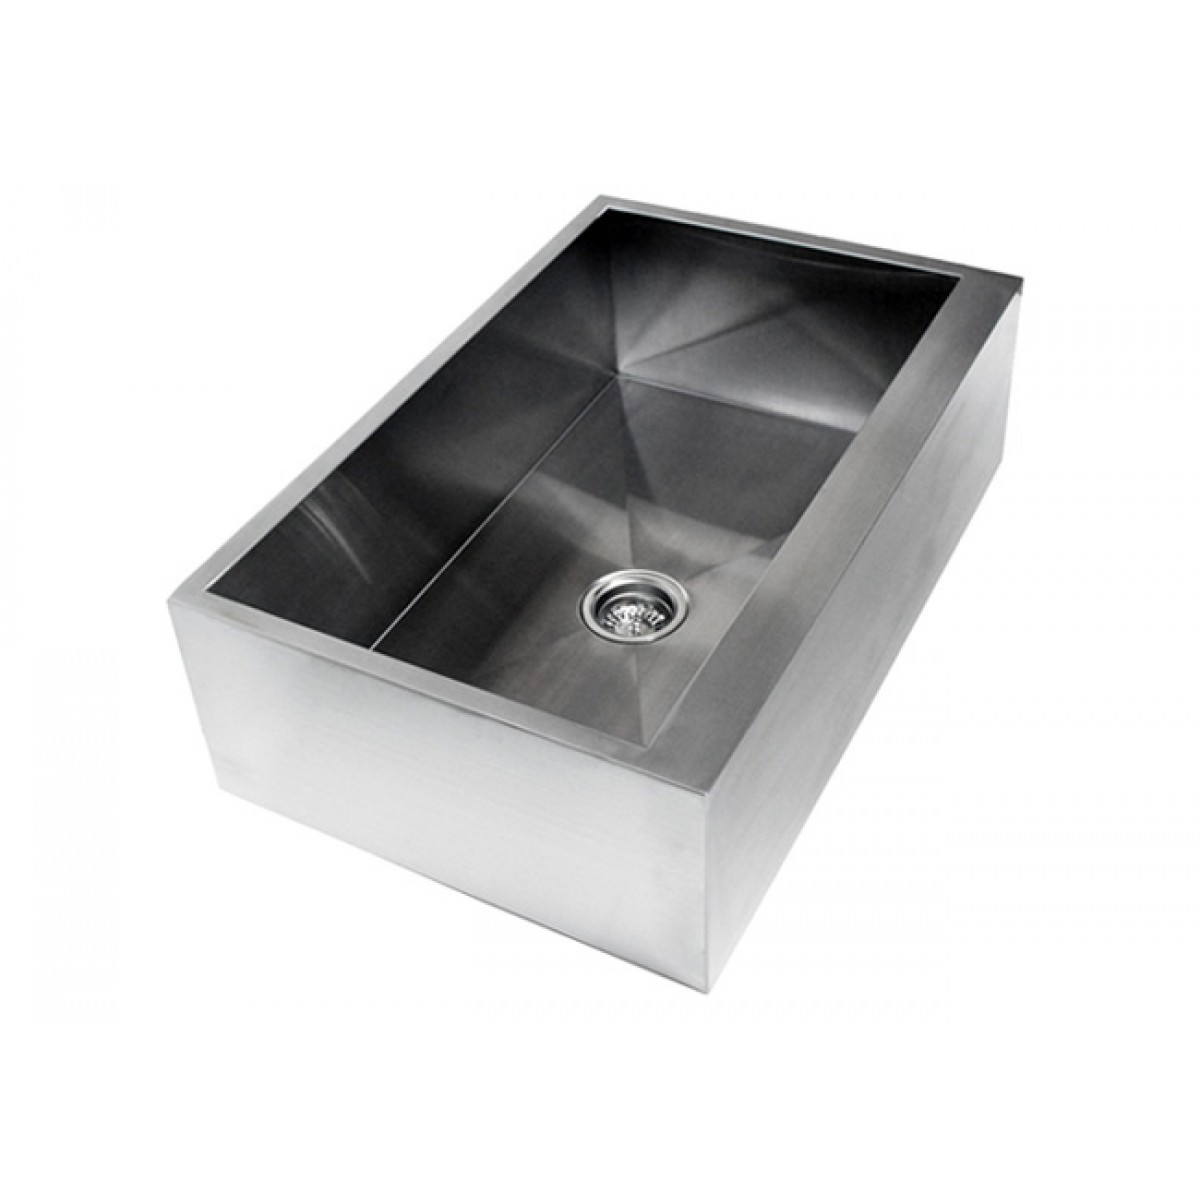 ... Stainless Steel Single Bowl Flat Front Farmhouse Apron Kitchen Sink